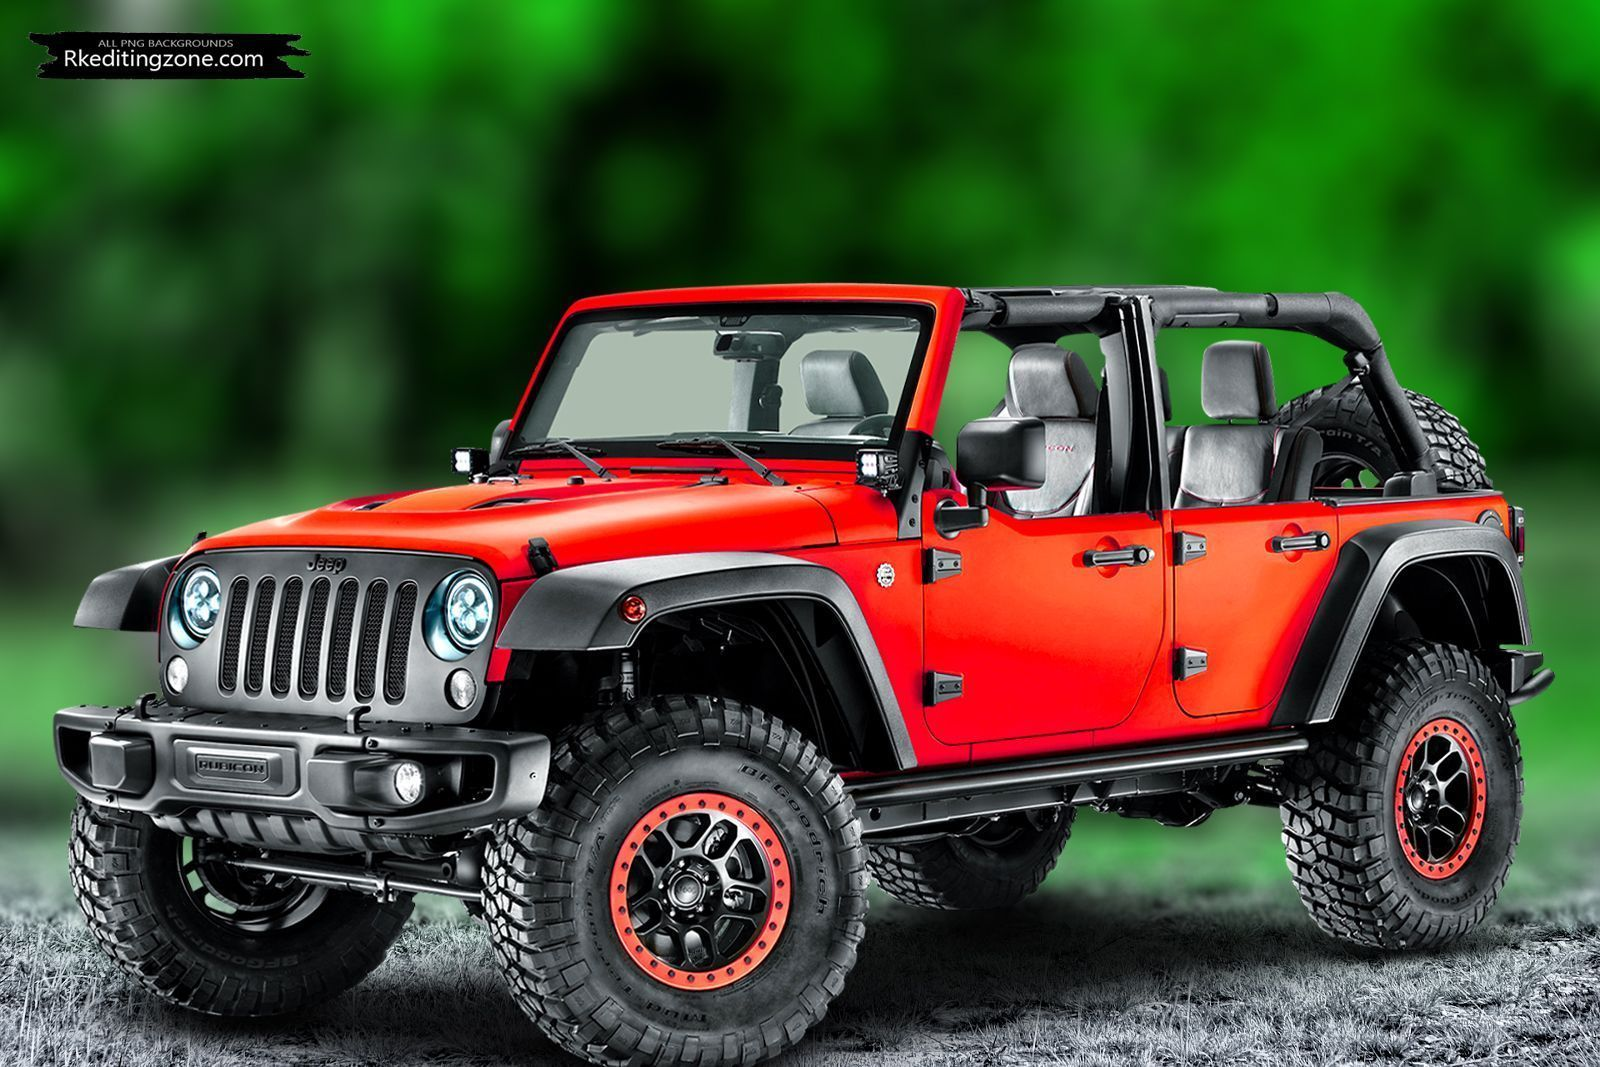 New Background For Photoshop Editing Cb Backgrounds - Full Hd Jeep Background , HD Wallpaper & Backgrounds